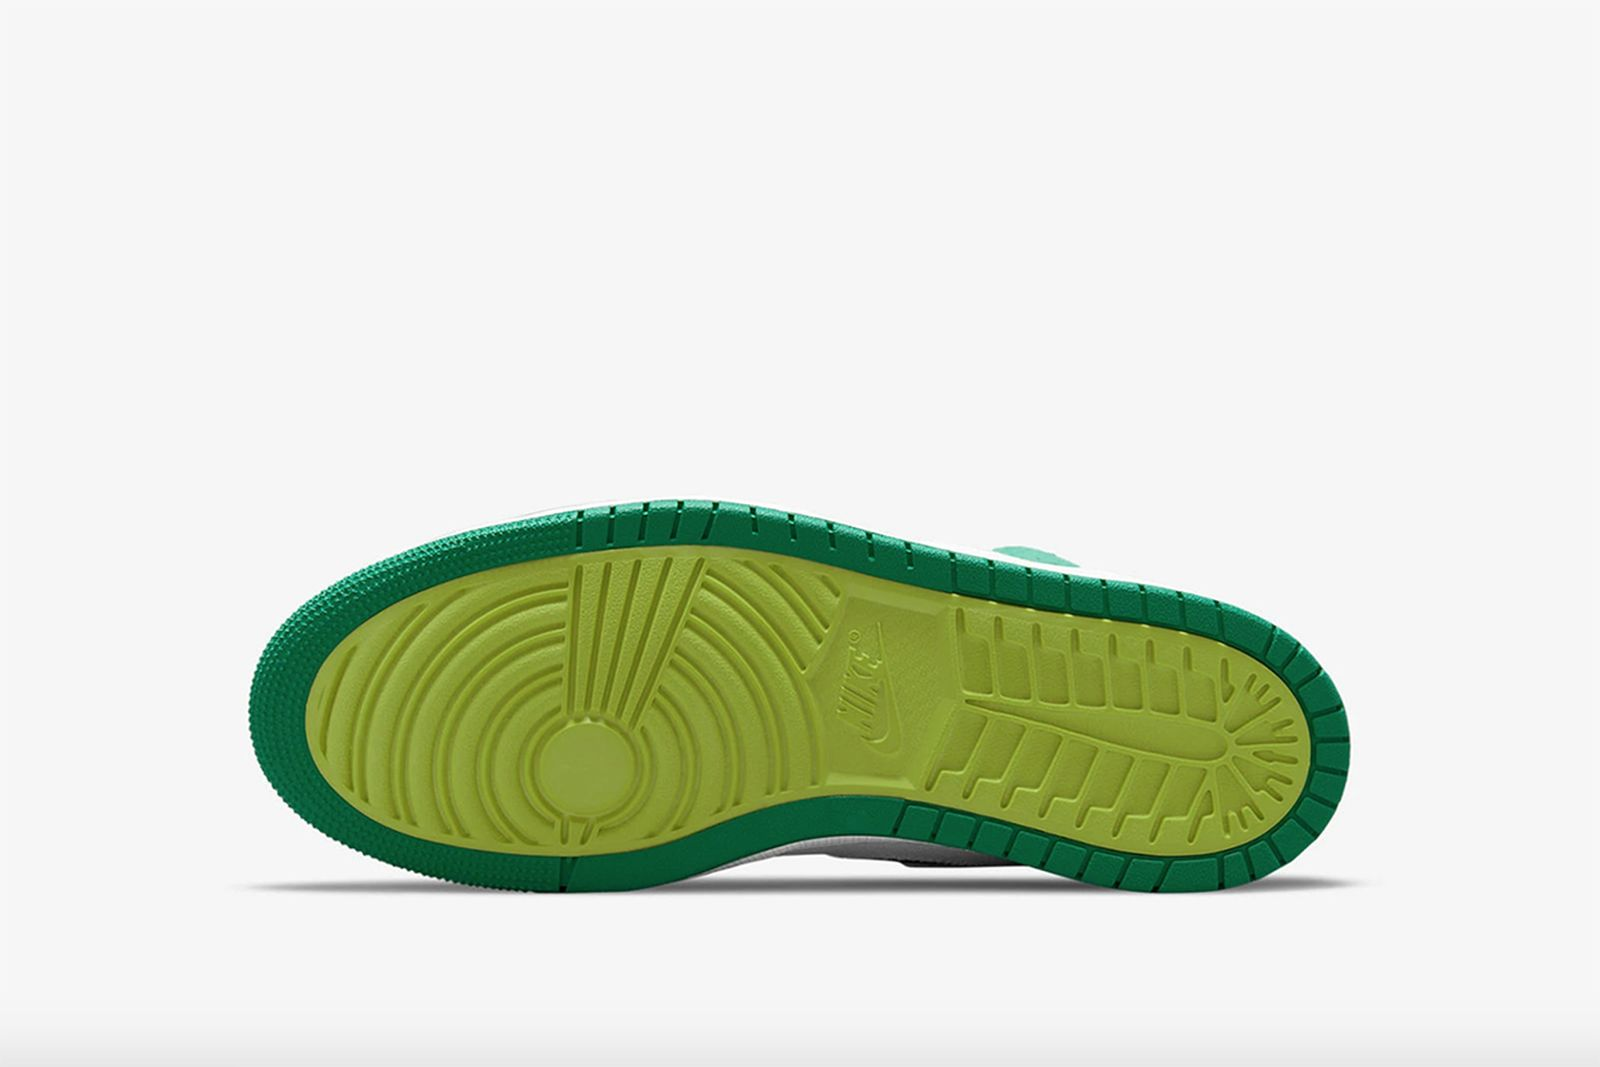 nike-air-jordan-1-zoom-cmft-stadium-green-release-date-price-06